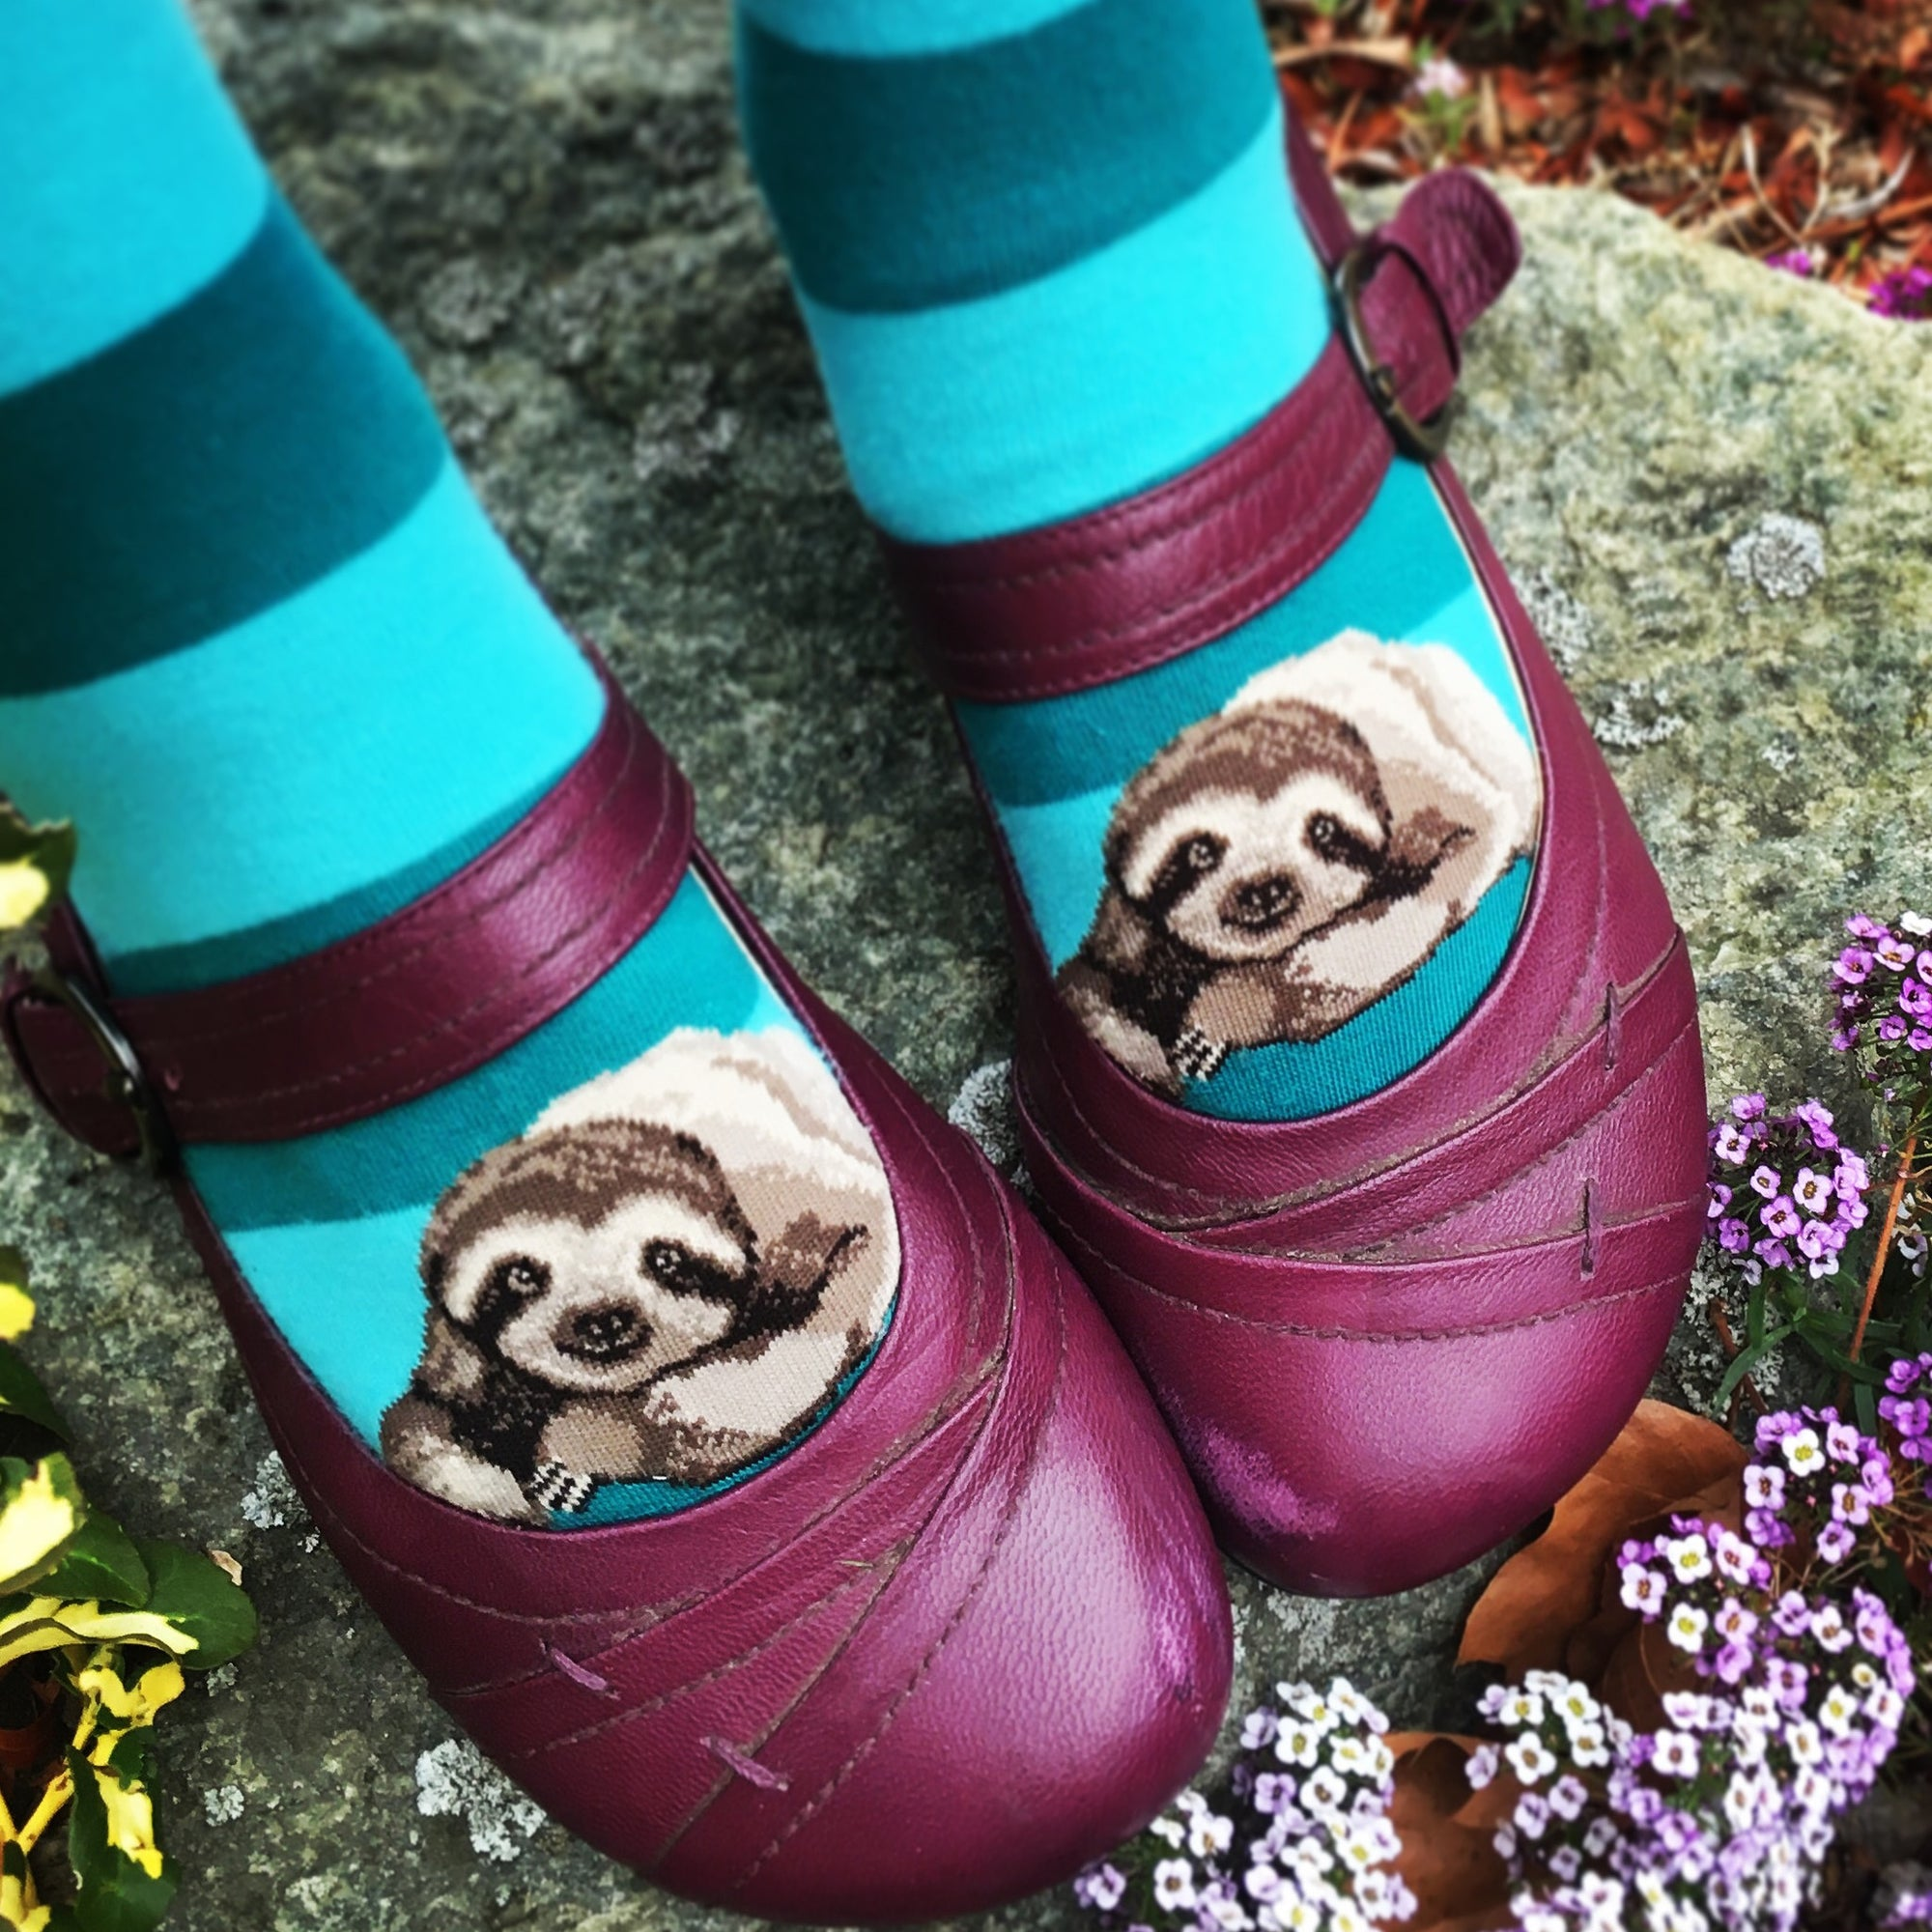 These cute teal striped sloth socks make it look like the sloths are peeking out from her purple Mary Jane shoes.